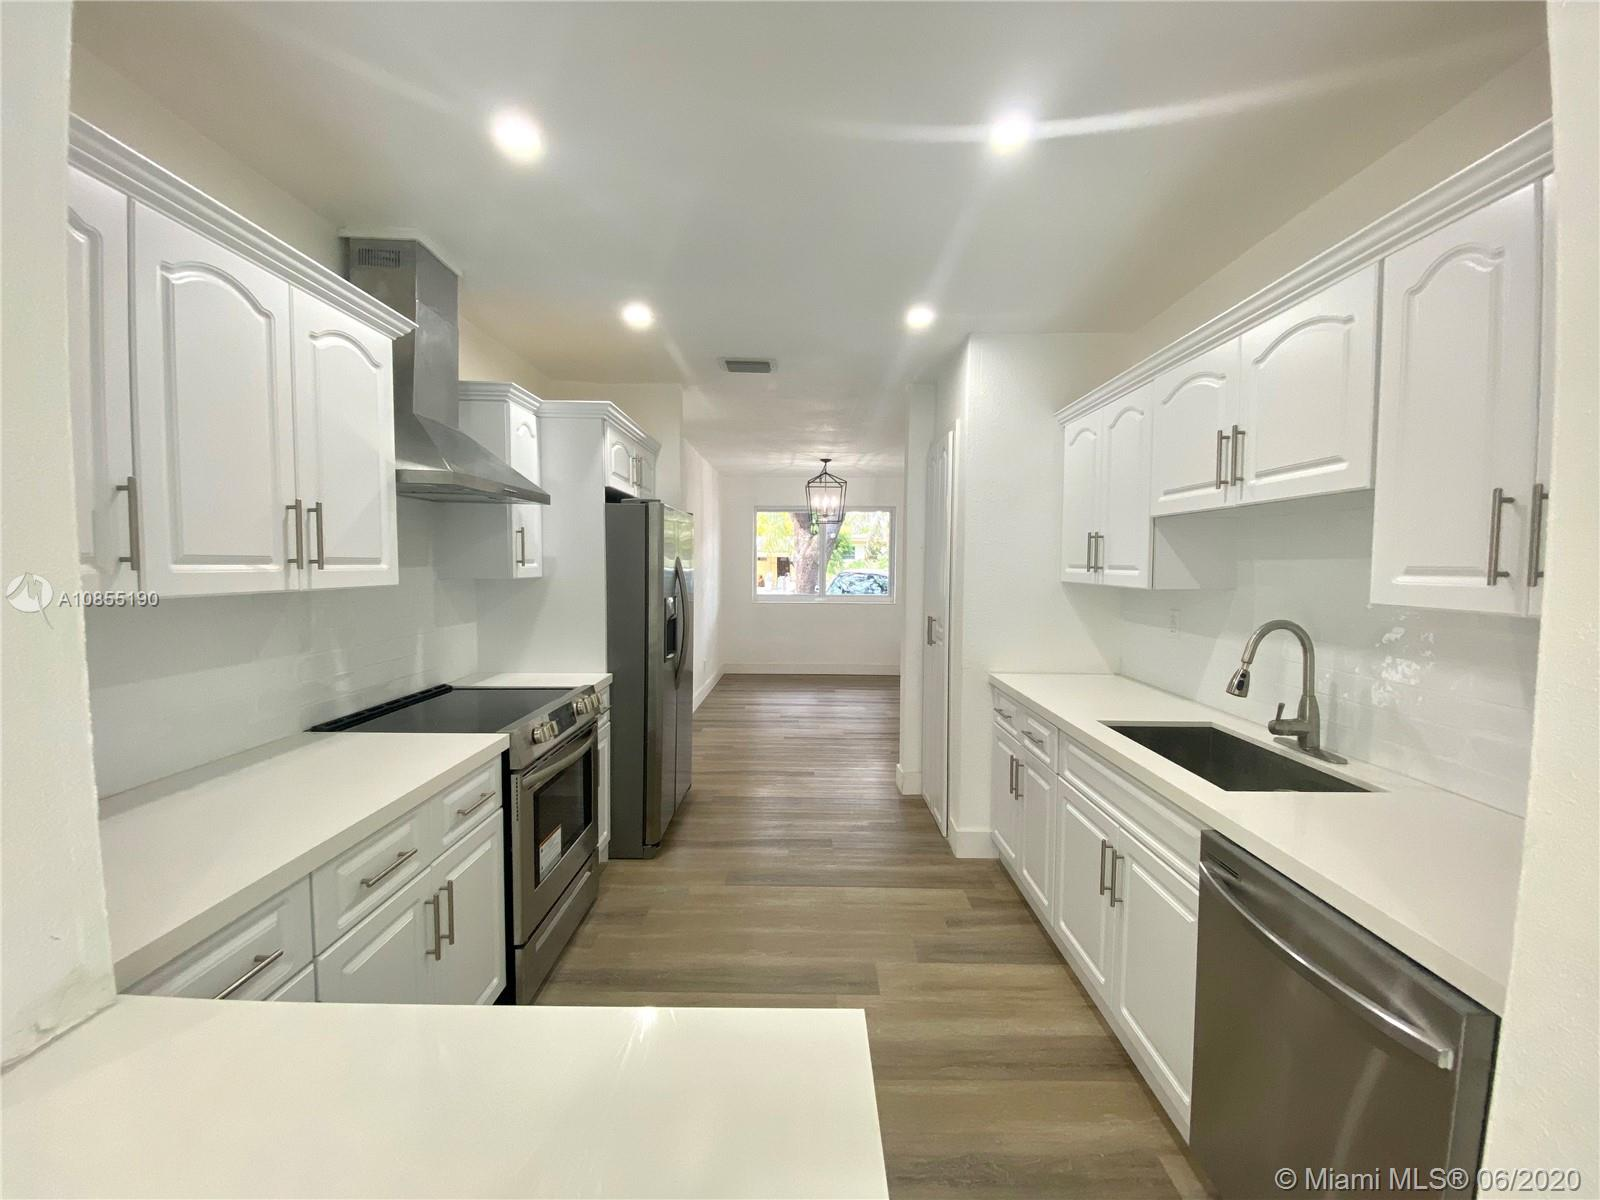 1020 NE 160th St, North Miami Beach, Florida 33162, 3 Bedrooms Bedrooms, ,2 BathroomsBathrooms,Residential,For Sale,1020 NE 160th St,A10855190